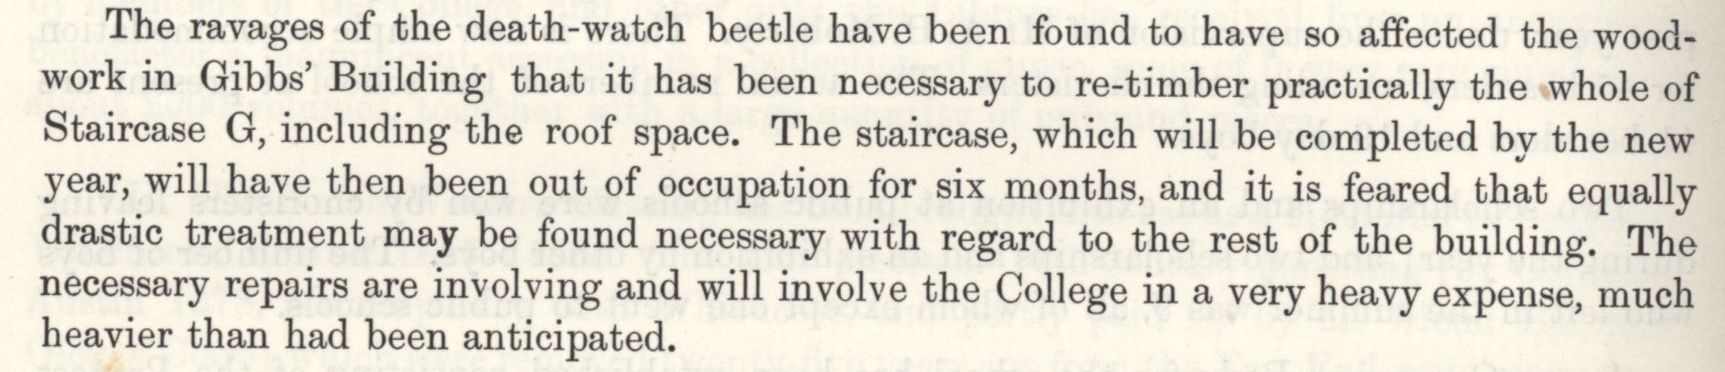 The re-timbering of the whole of staircase G of the Gibbs building, due to damage caused by the death-watch beetle. [Annual Report, 1928]